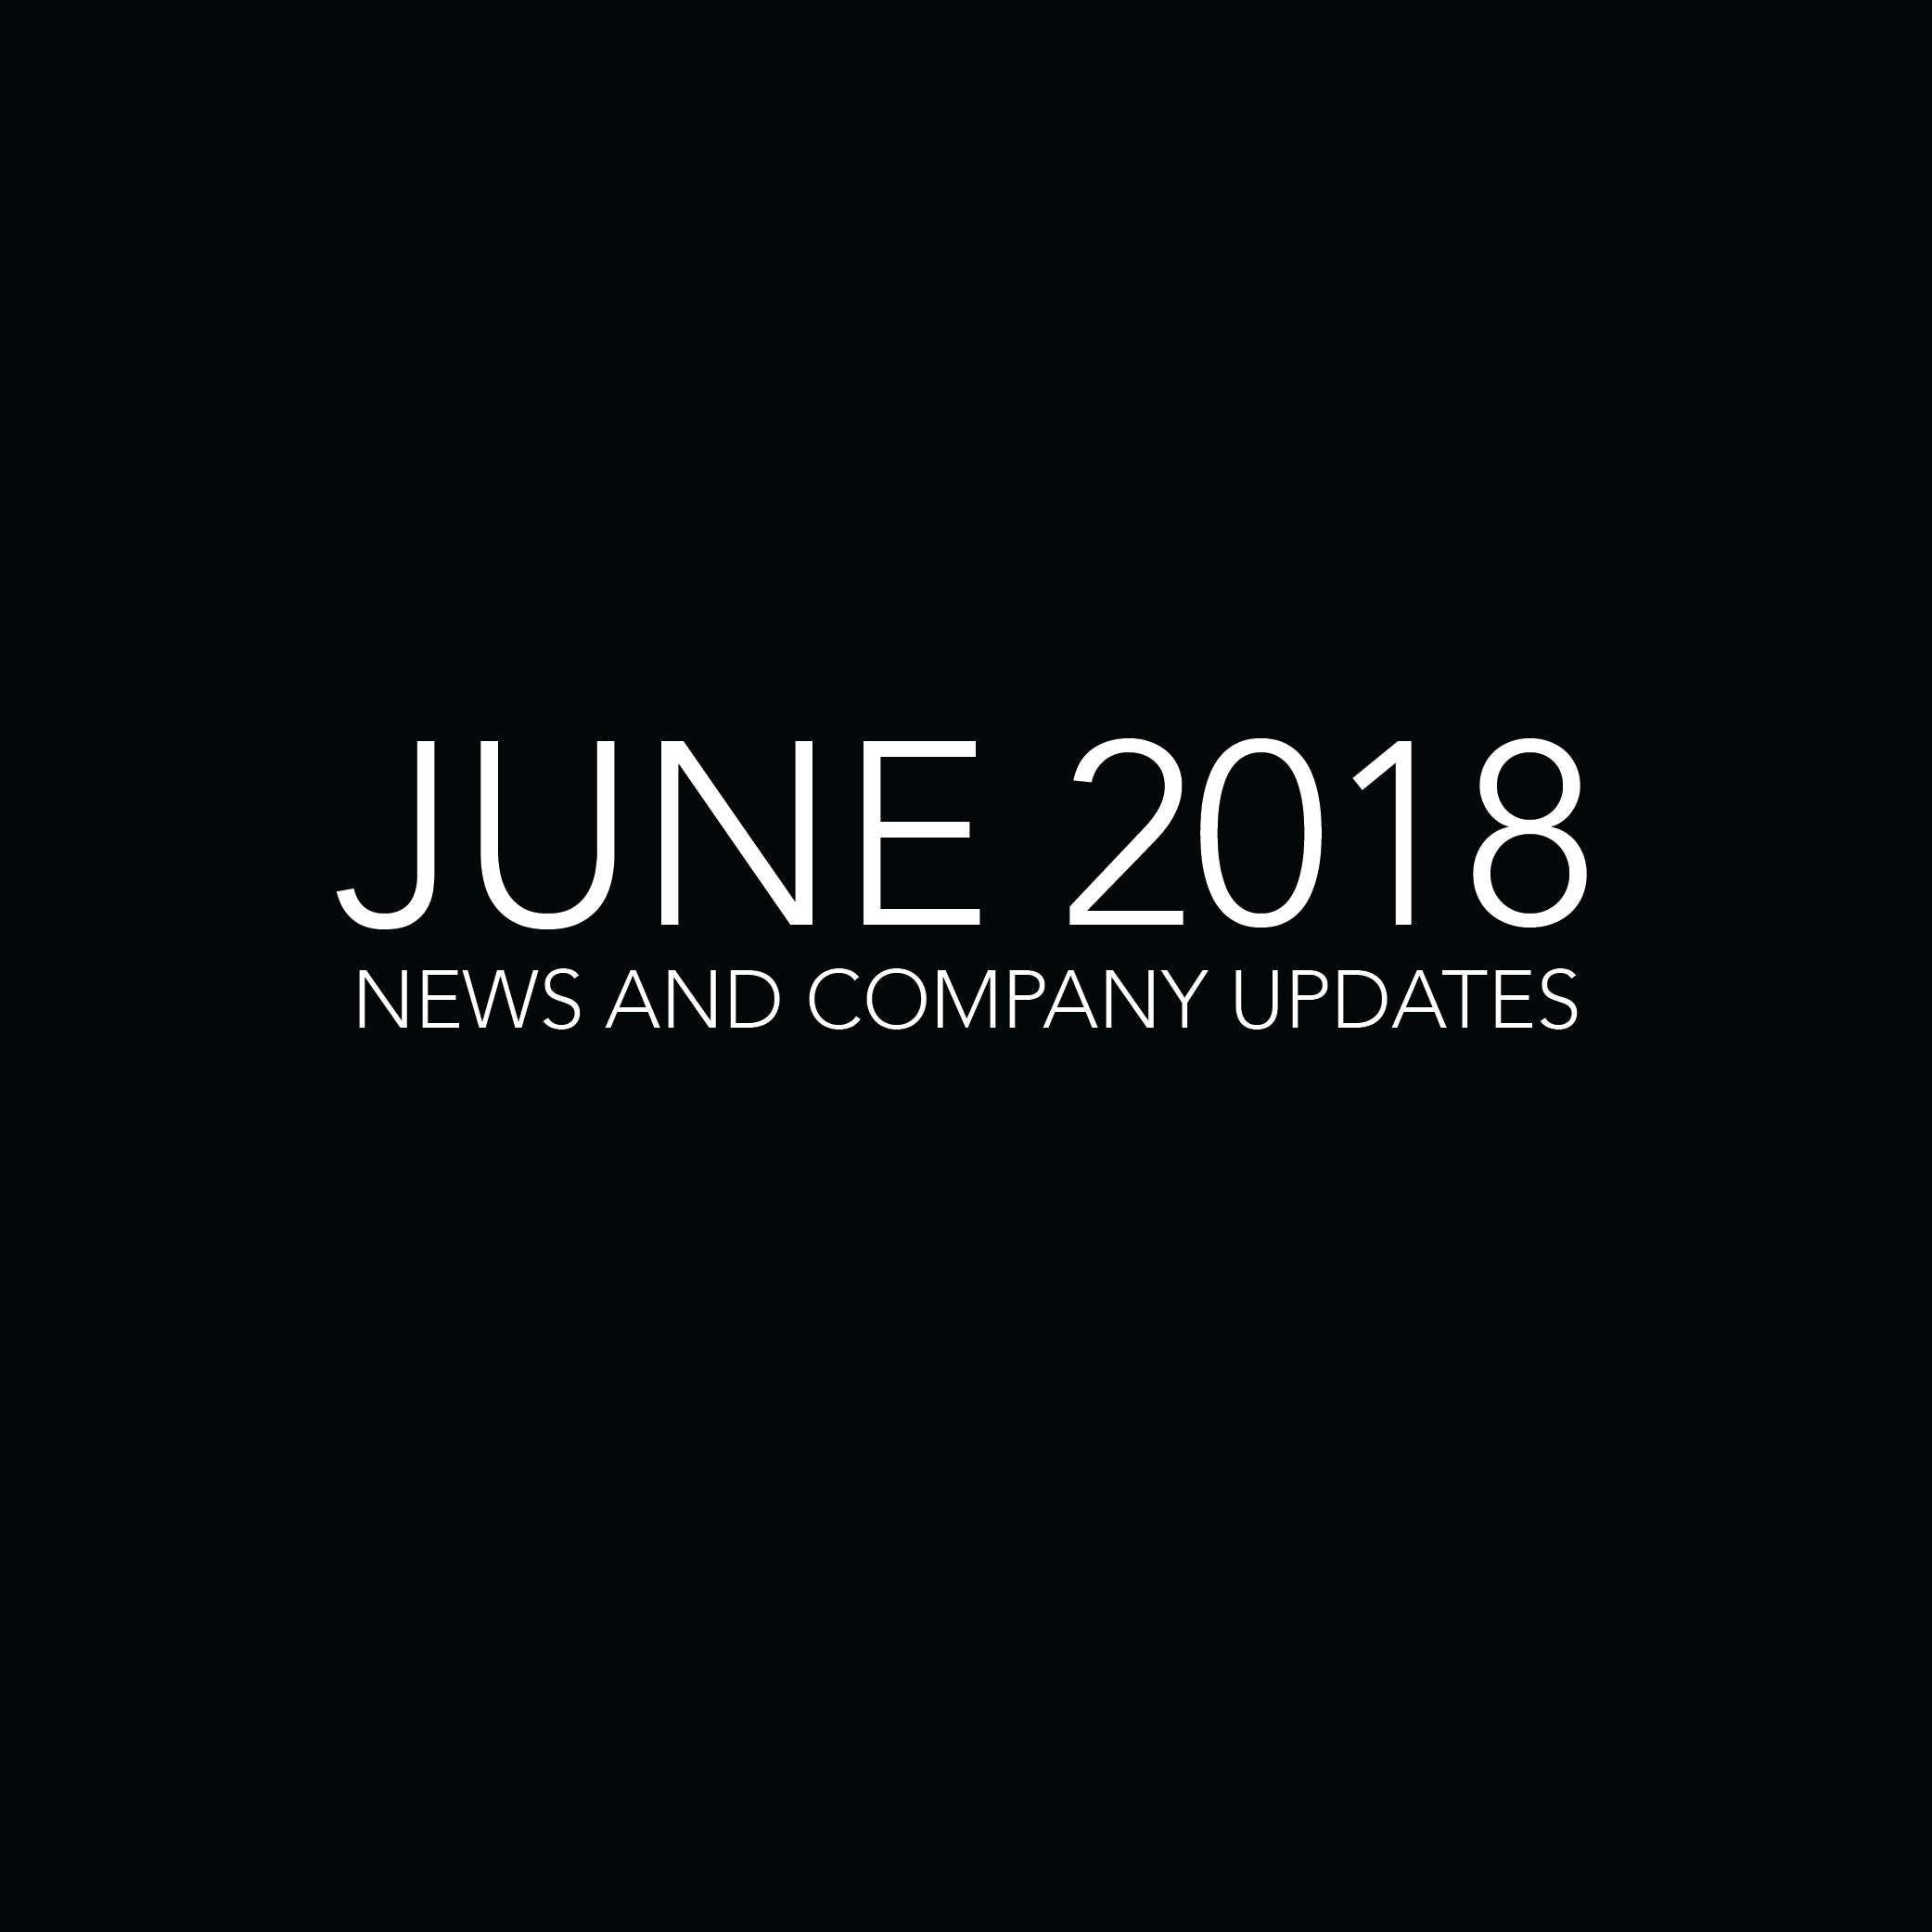 June 2018 Company Update